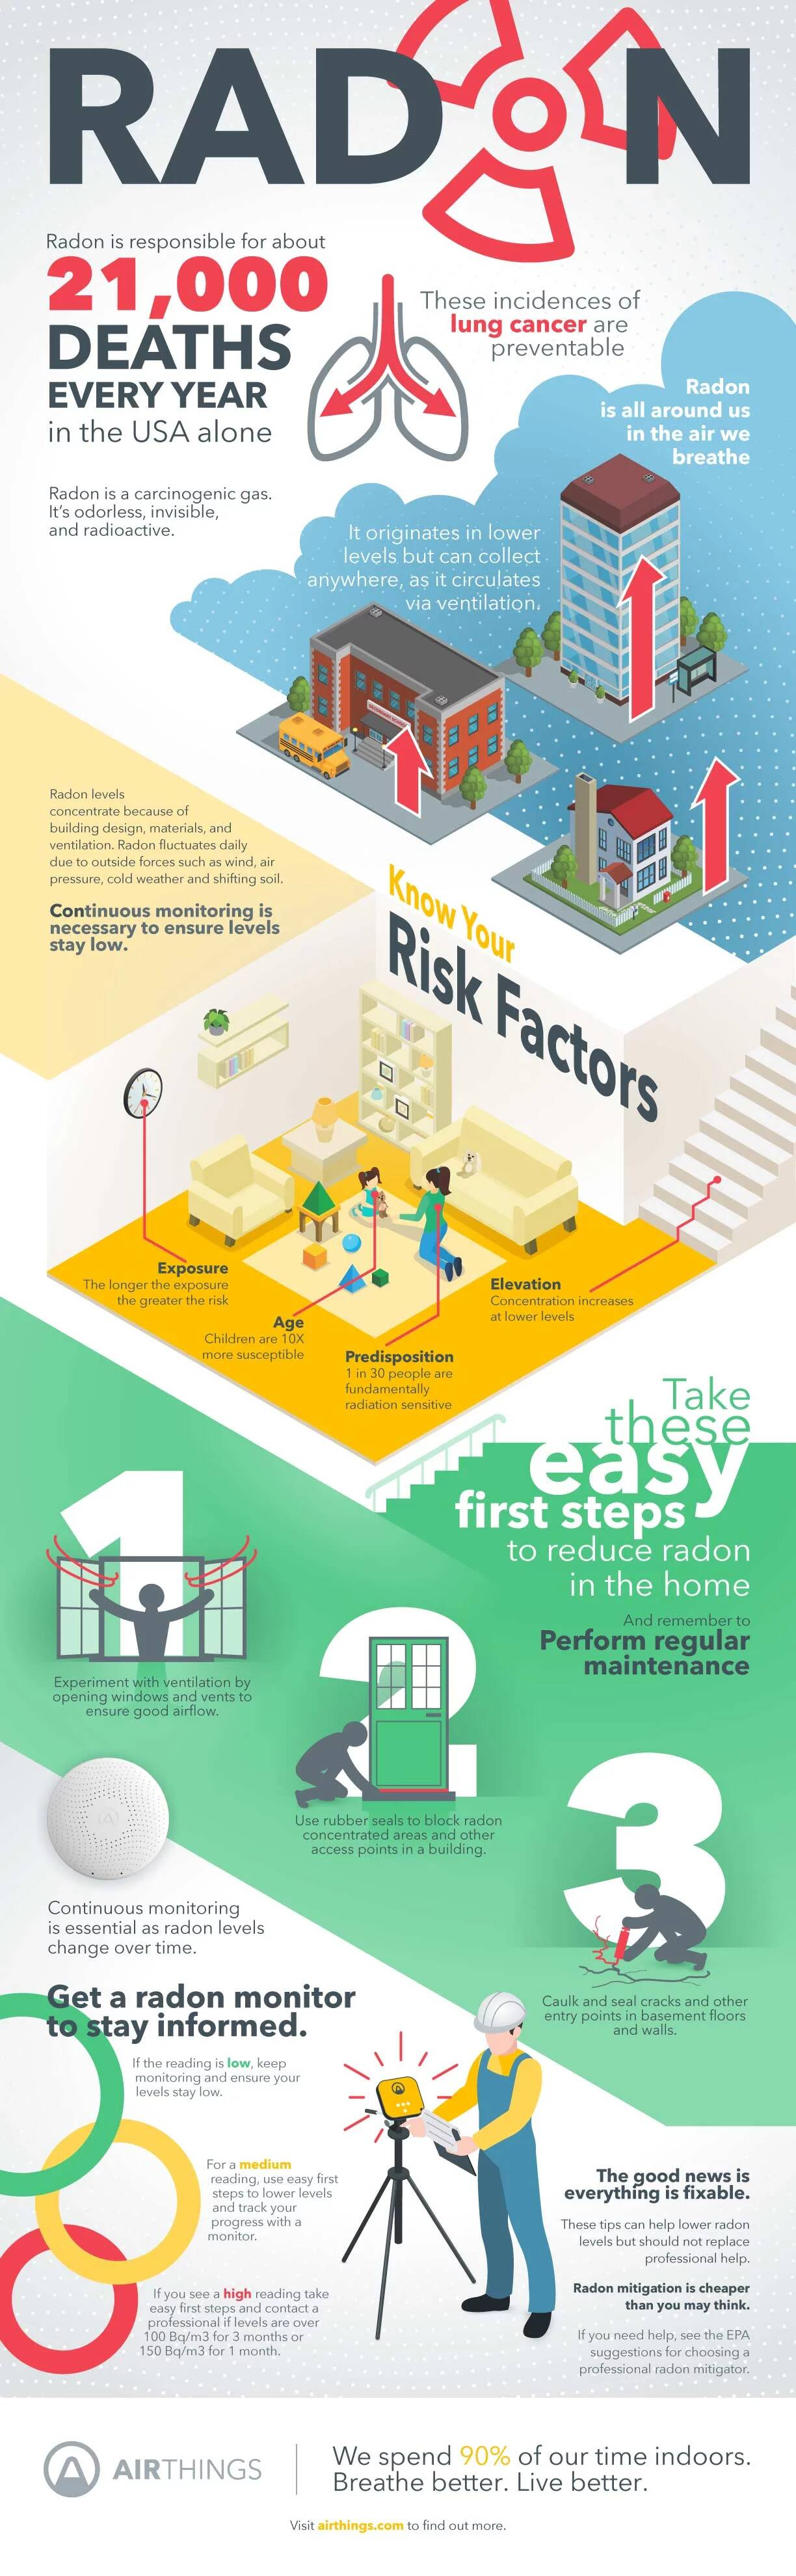 Airthings-Infographic-radon-information-guide